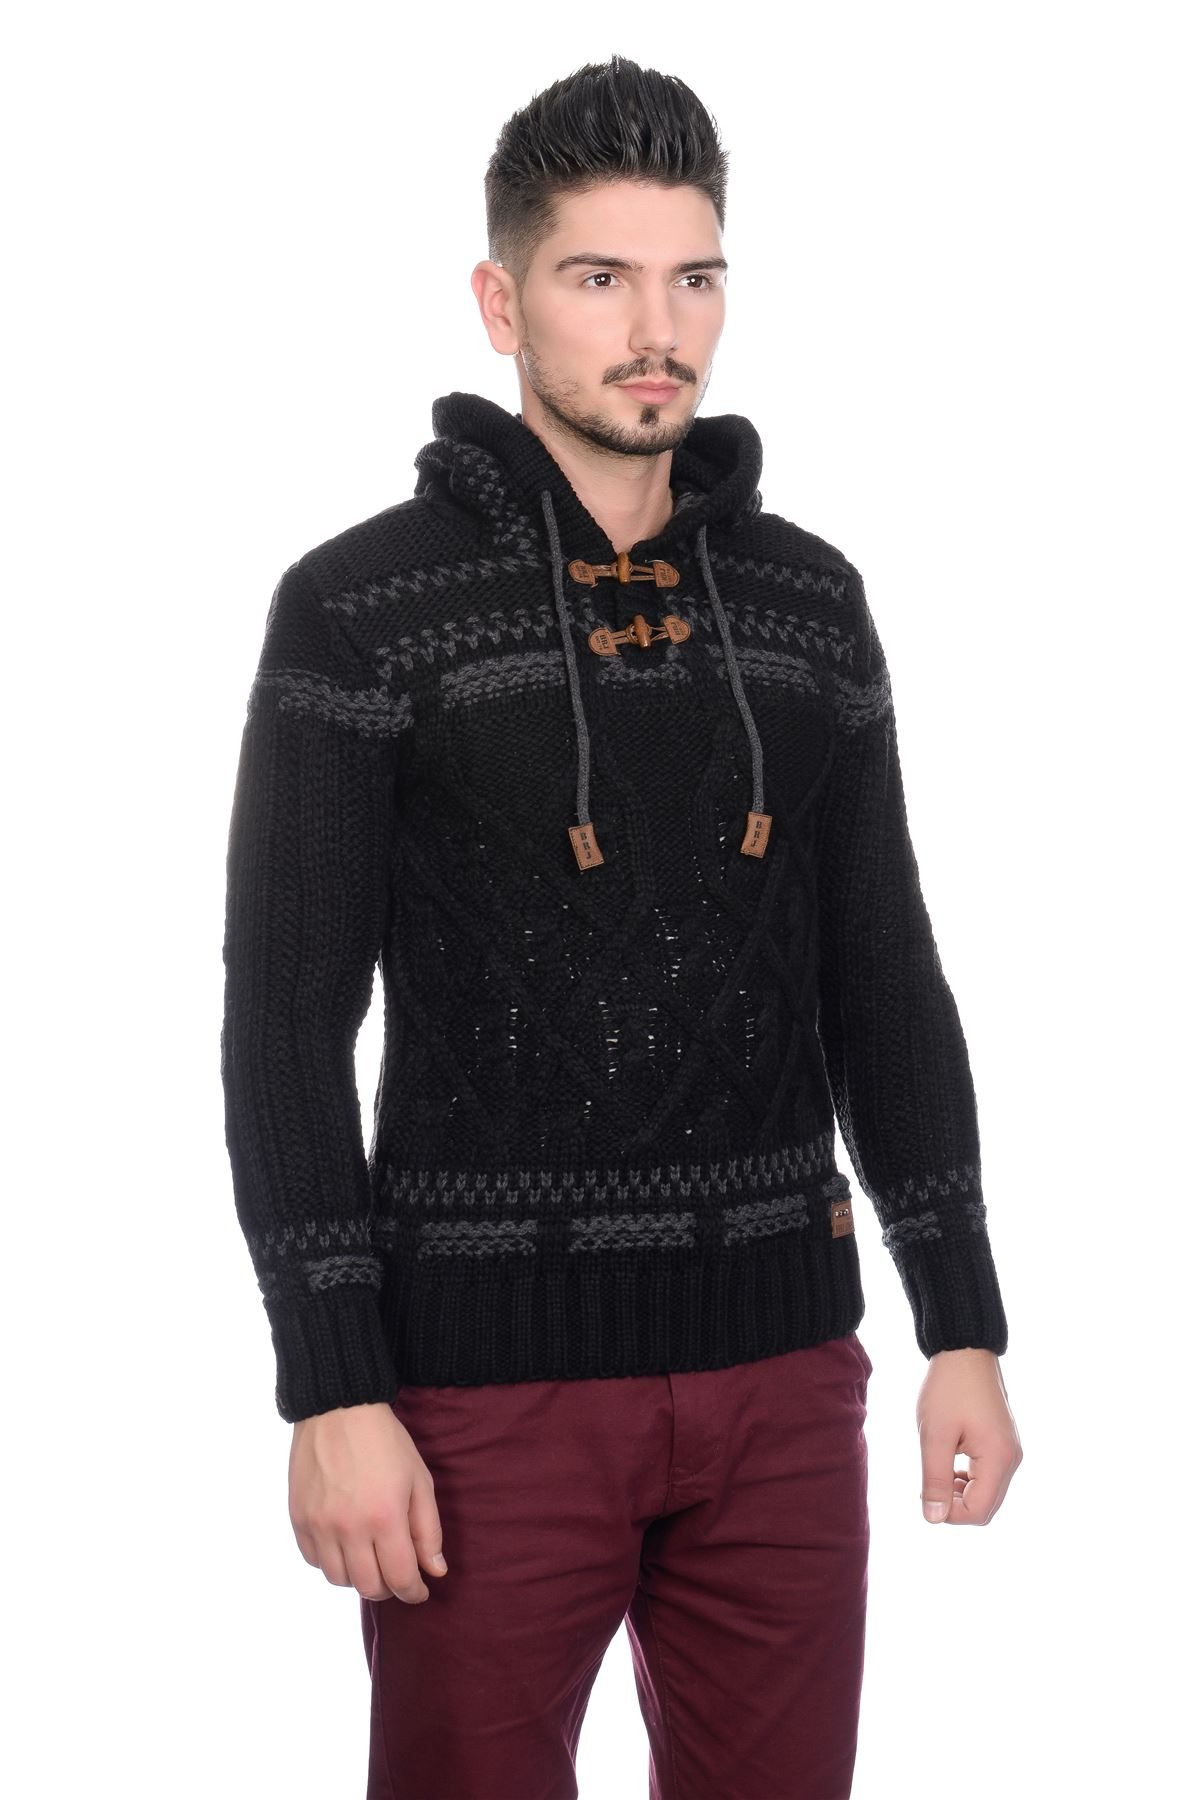 Find great deals on eBay for mens cable knit sweater. Shop with confidence.